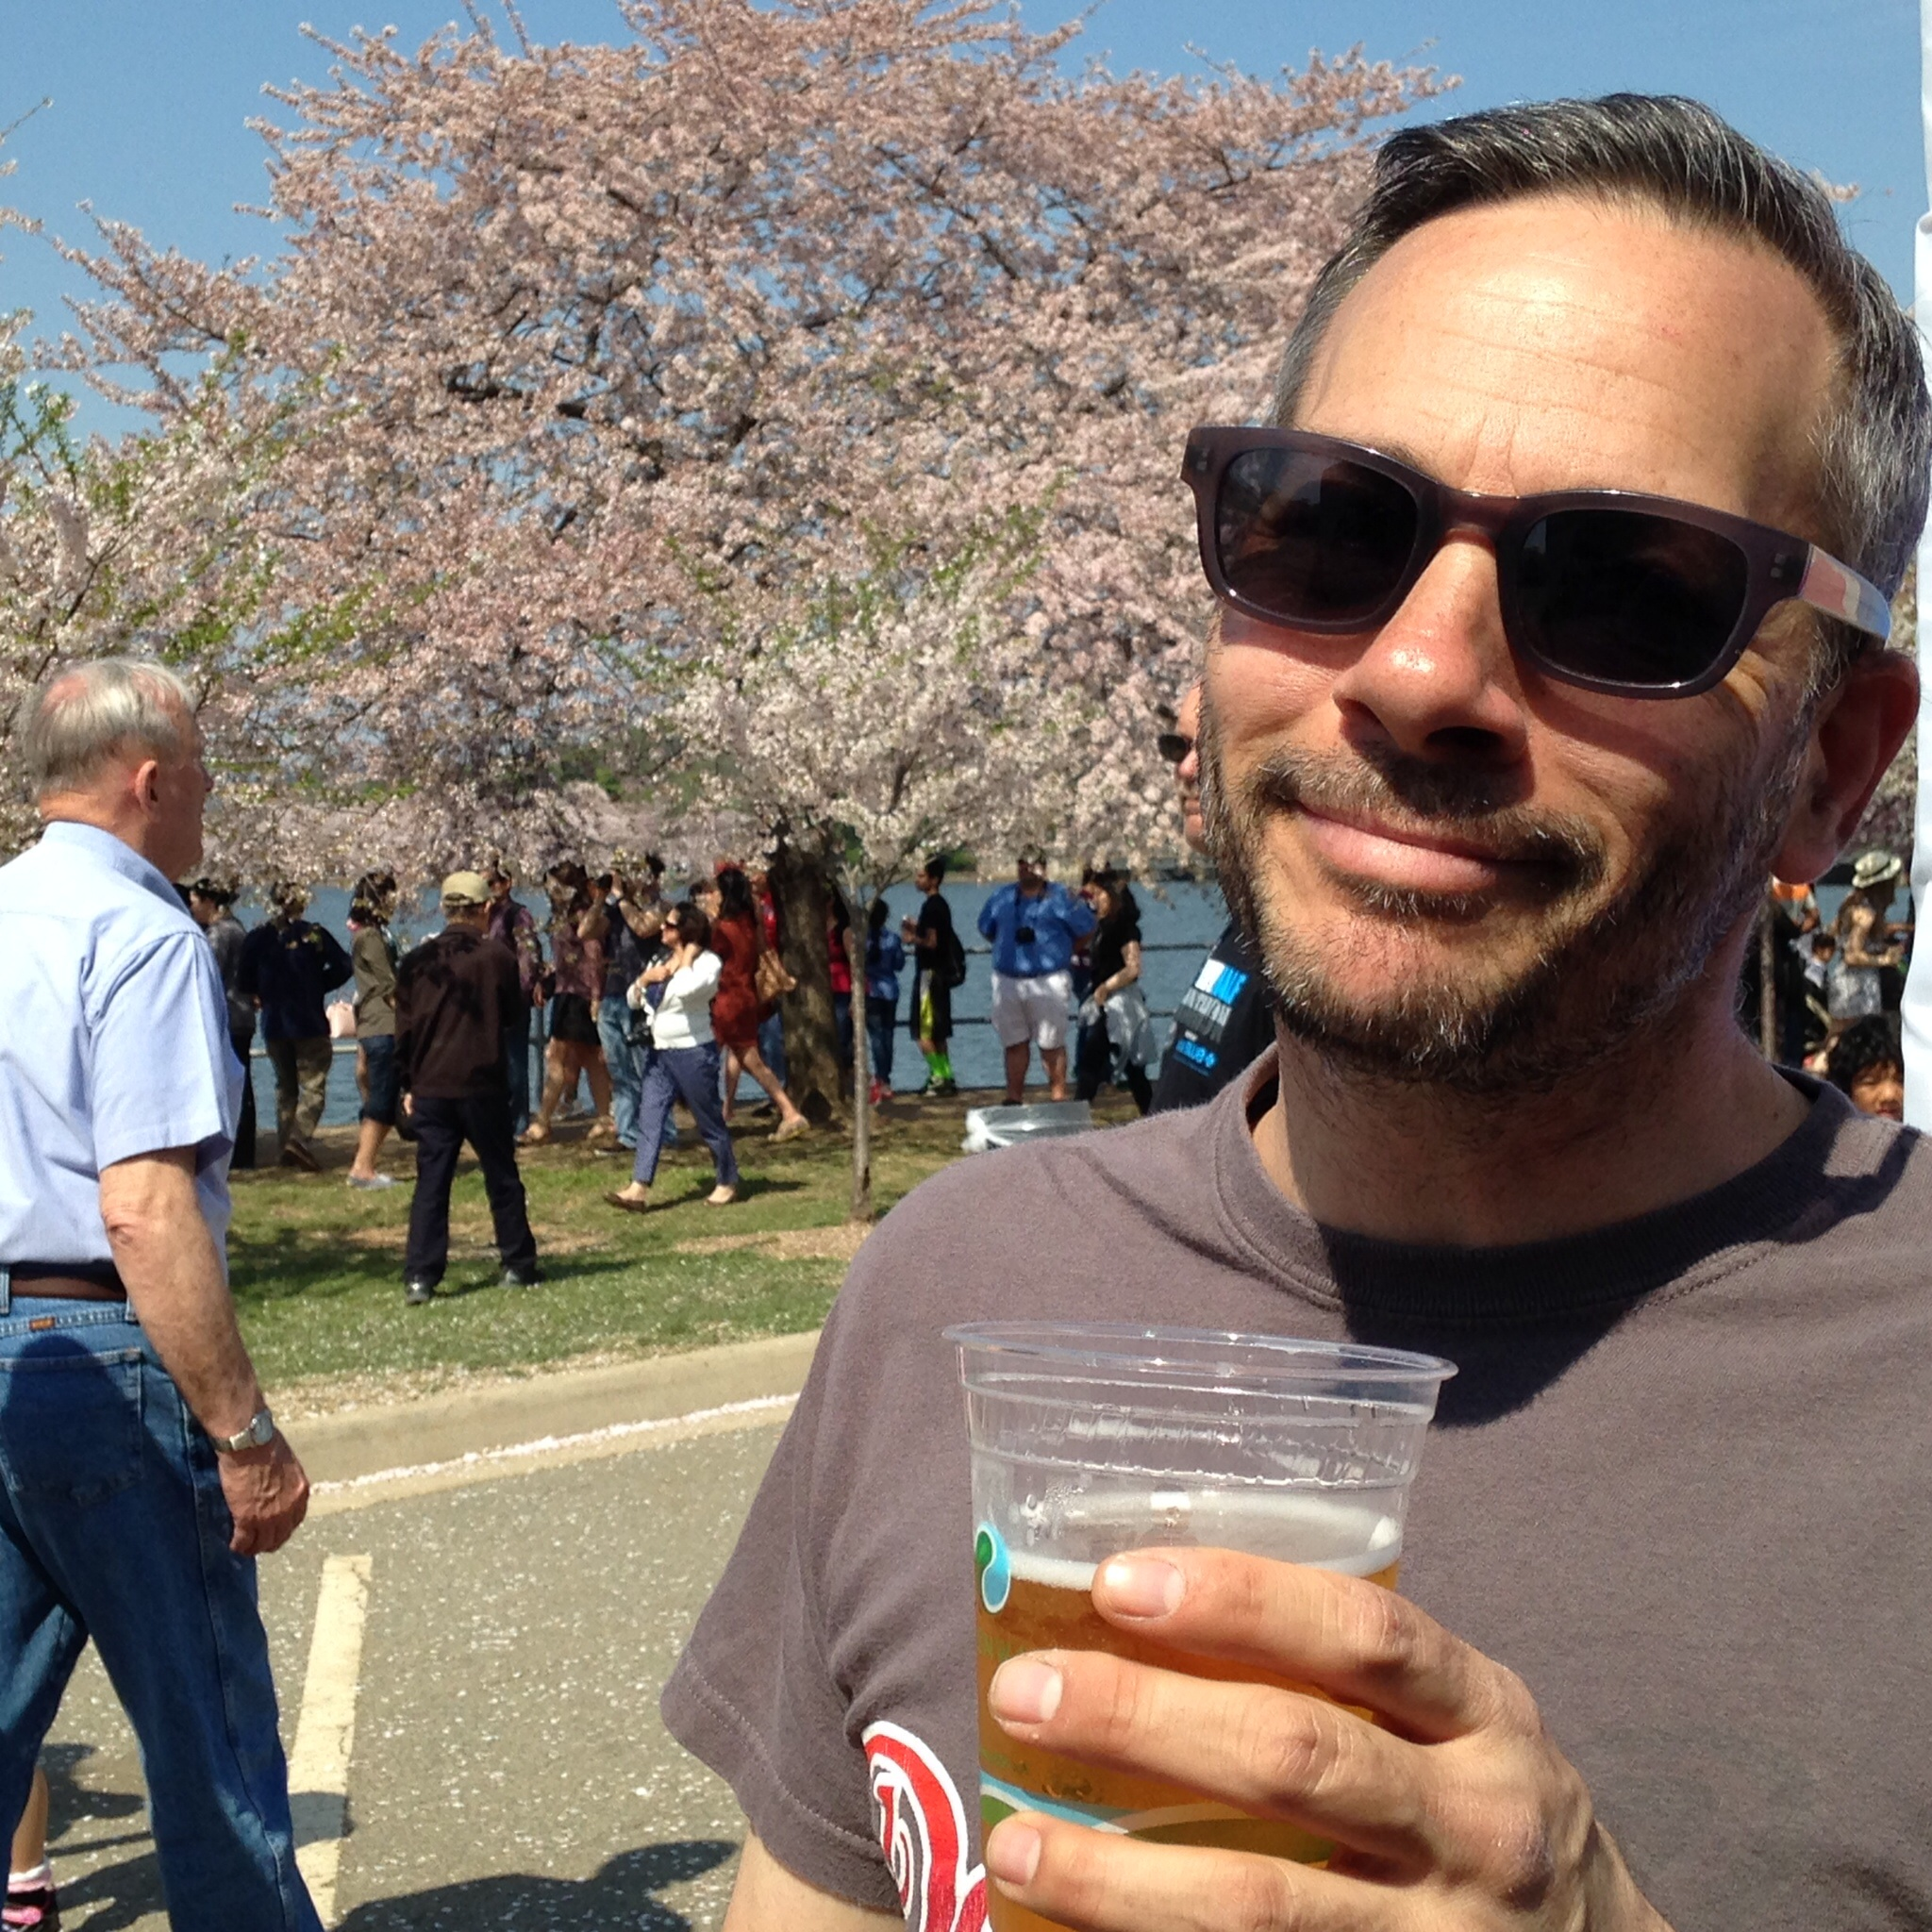 Mmmmm.....beer and blossom's